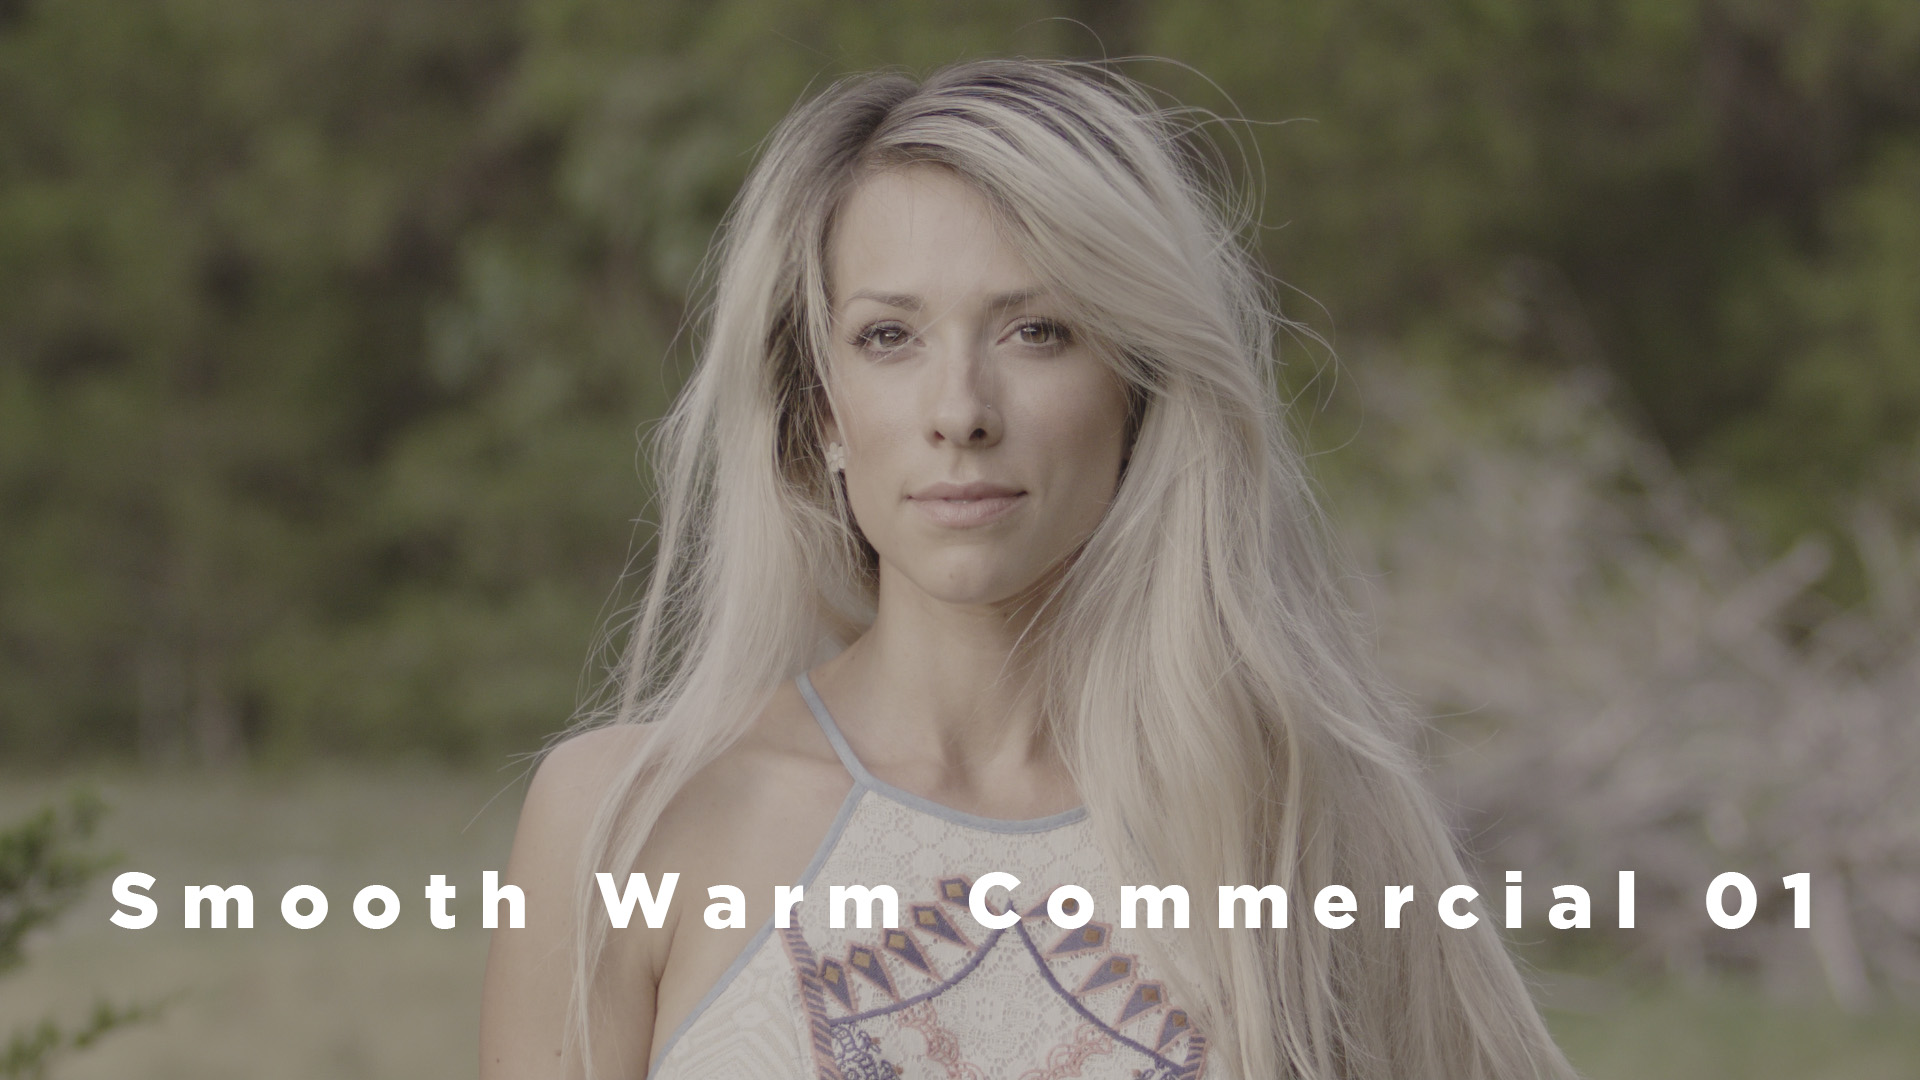 Smooth Warm Commercial 01.jpg